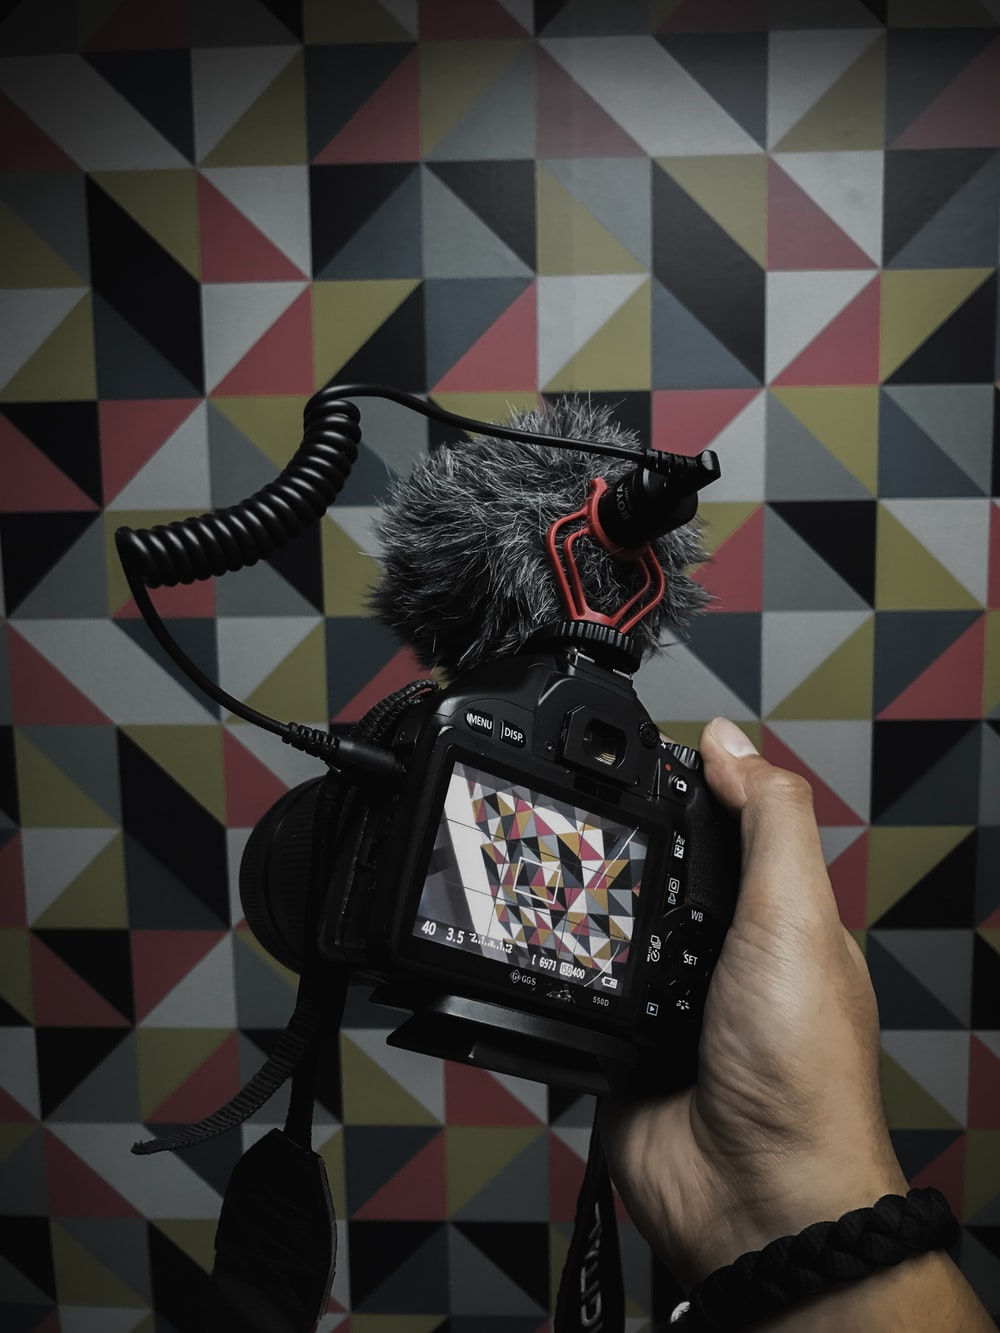 person holds DSLR camera with stereo recording cardioid microphone